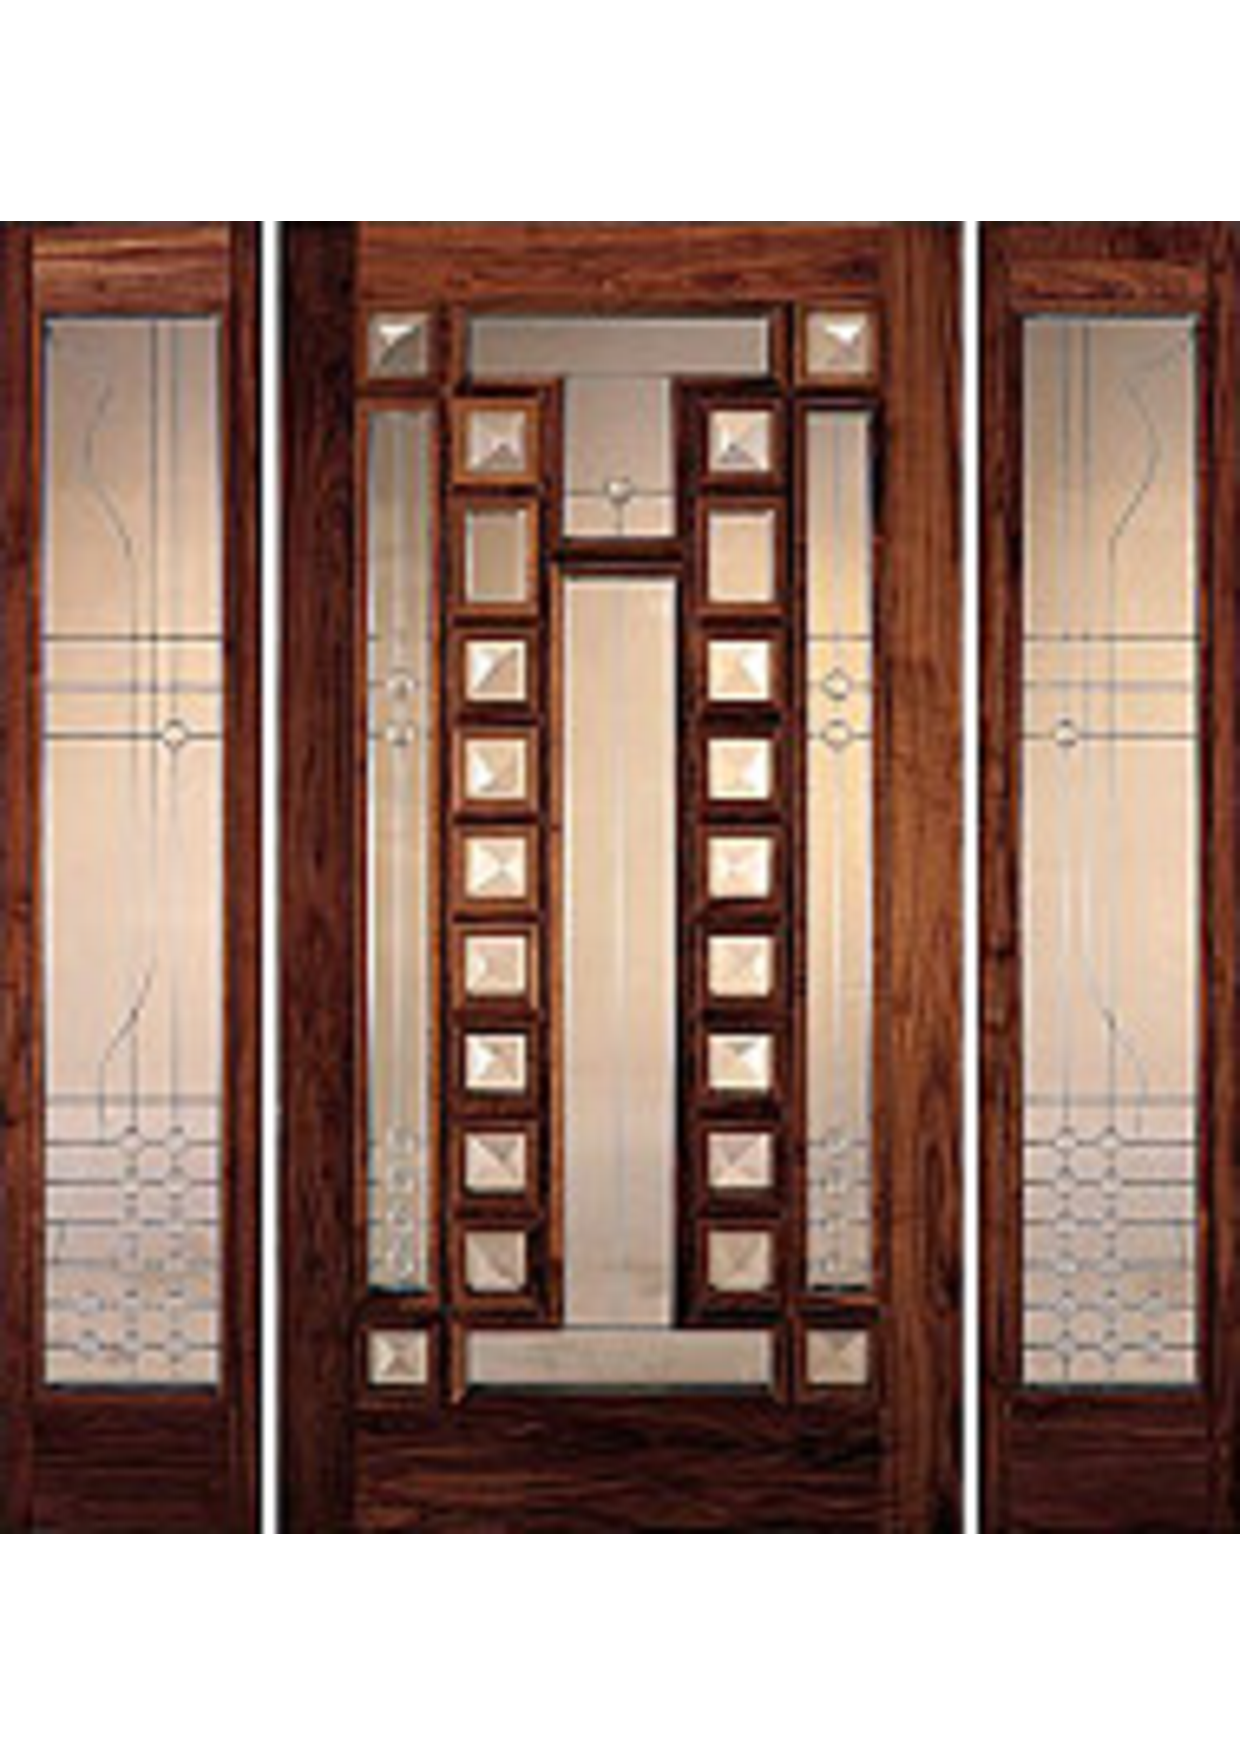 Living room door designs in india nakicphotography for Interior house doors designs